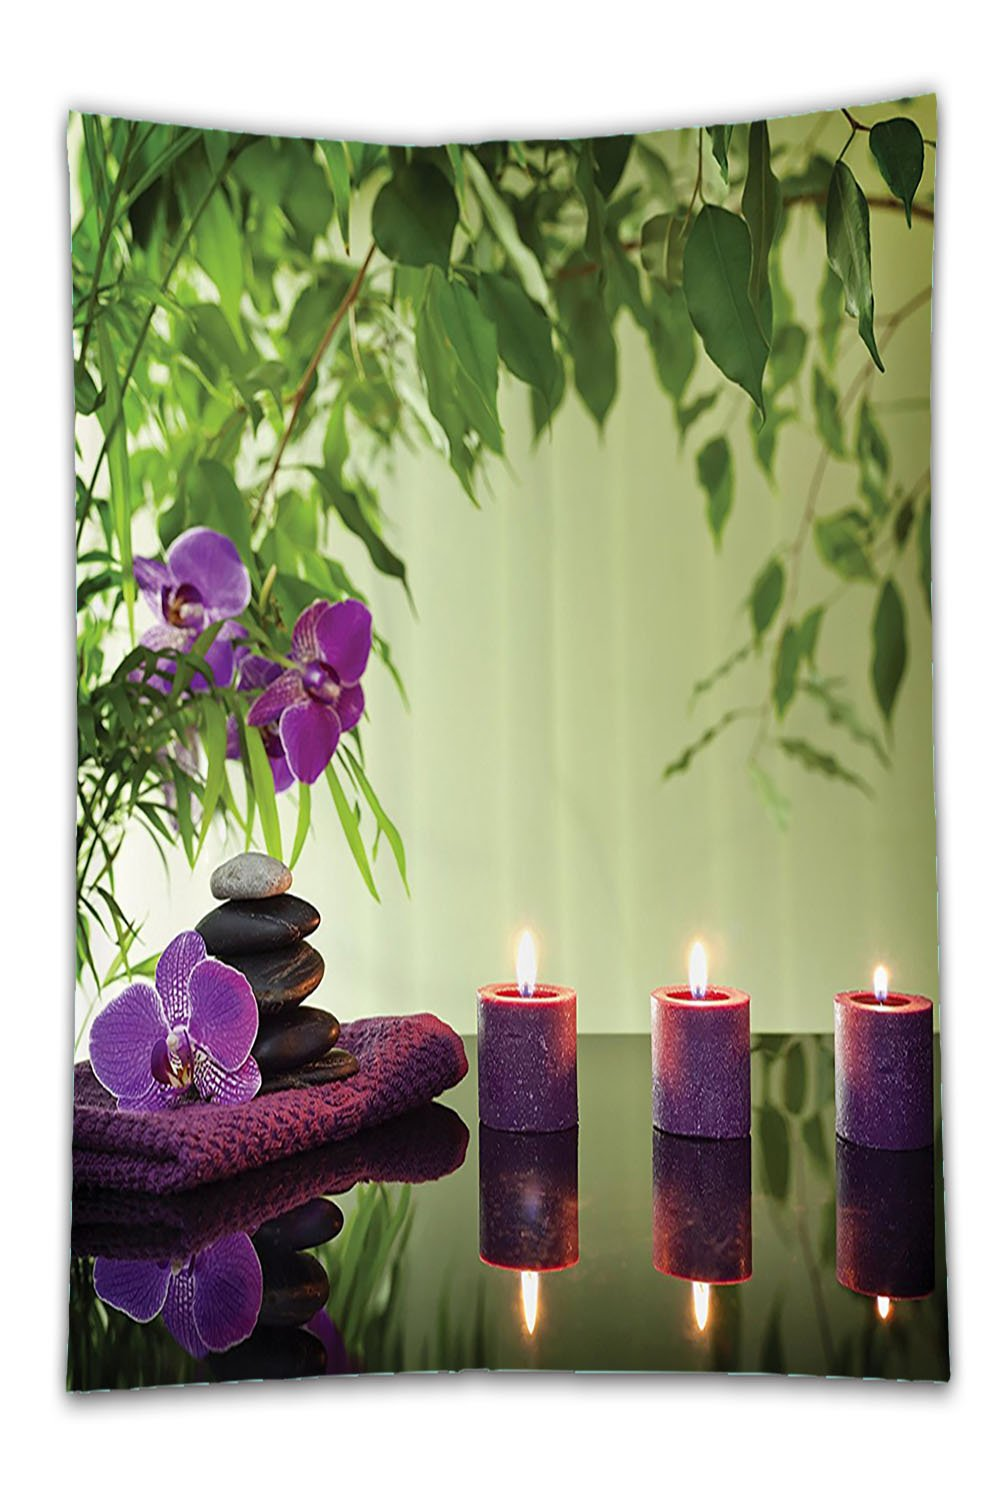 Beshowereb Fleece Throw Blanket Spa Decor Set Zen StoneAromatic CandleAnd OrchidBloomTreatment Vacation Bathroom Accessorie Long.jpg